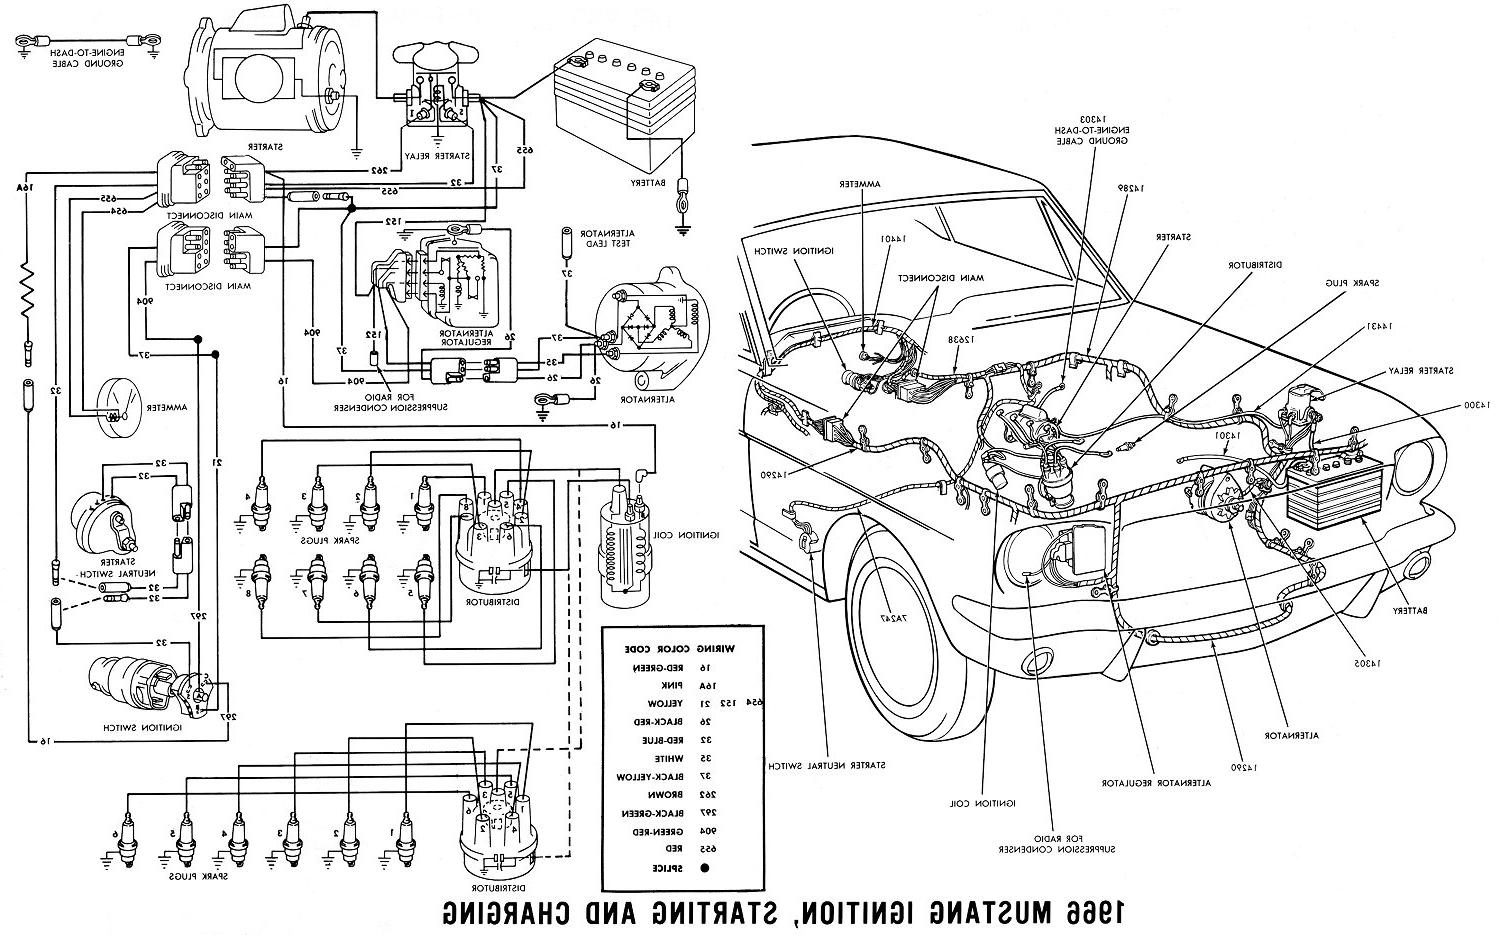 Miraculous 1968 Dodge Coronet Wiring Harness Wiring Diagram Wiring Digital Resources Jebrpcompassionincorg